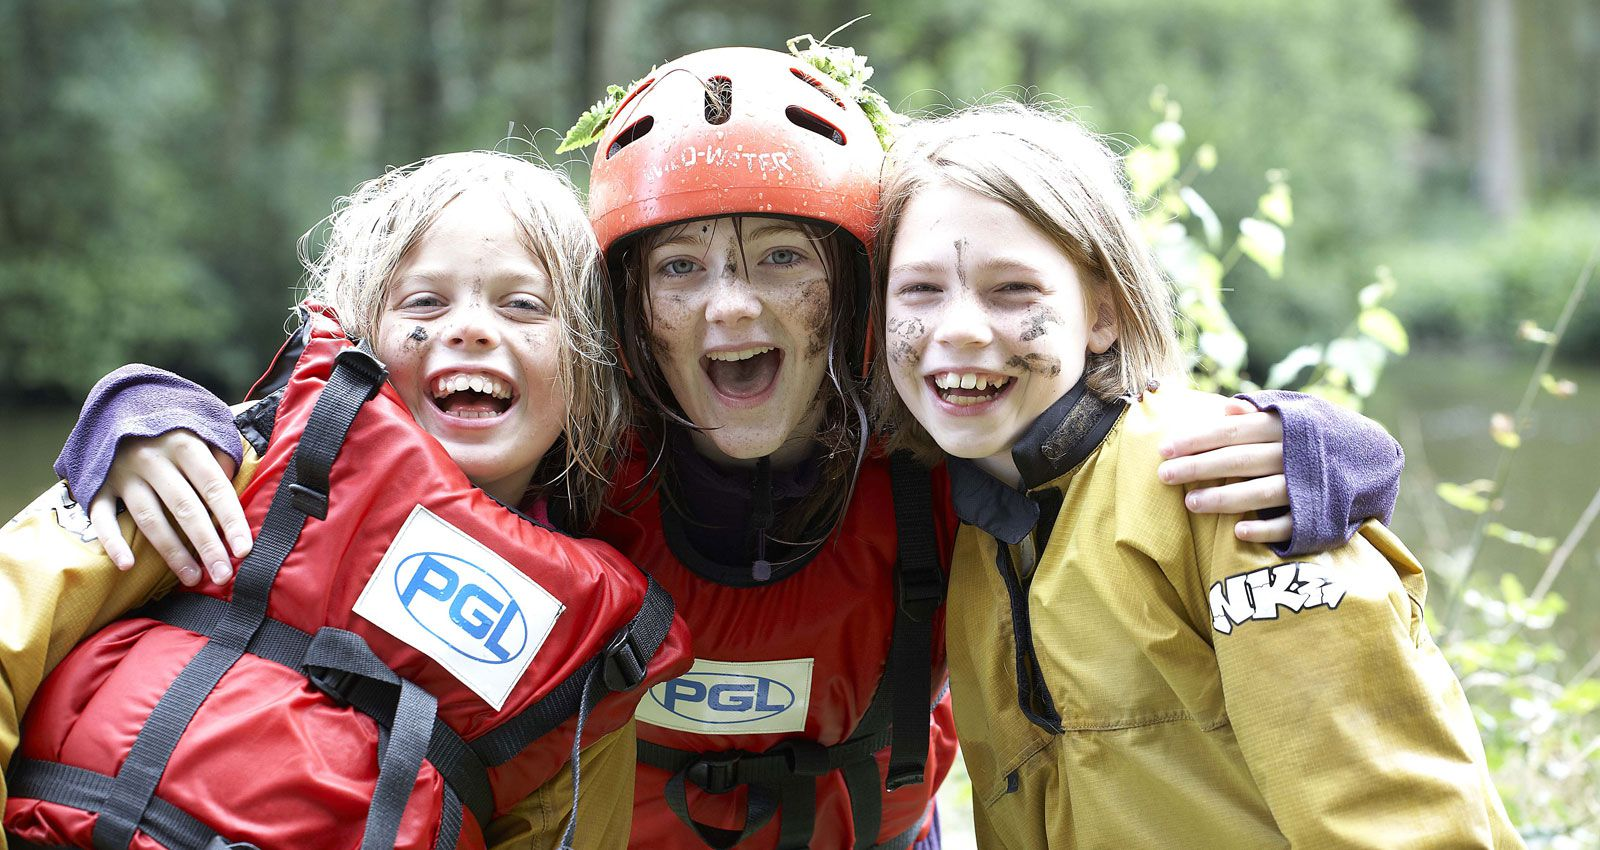 PGL Adventure Holidays for 7-17 year olds in the UK and France.